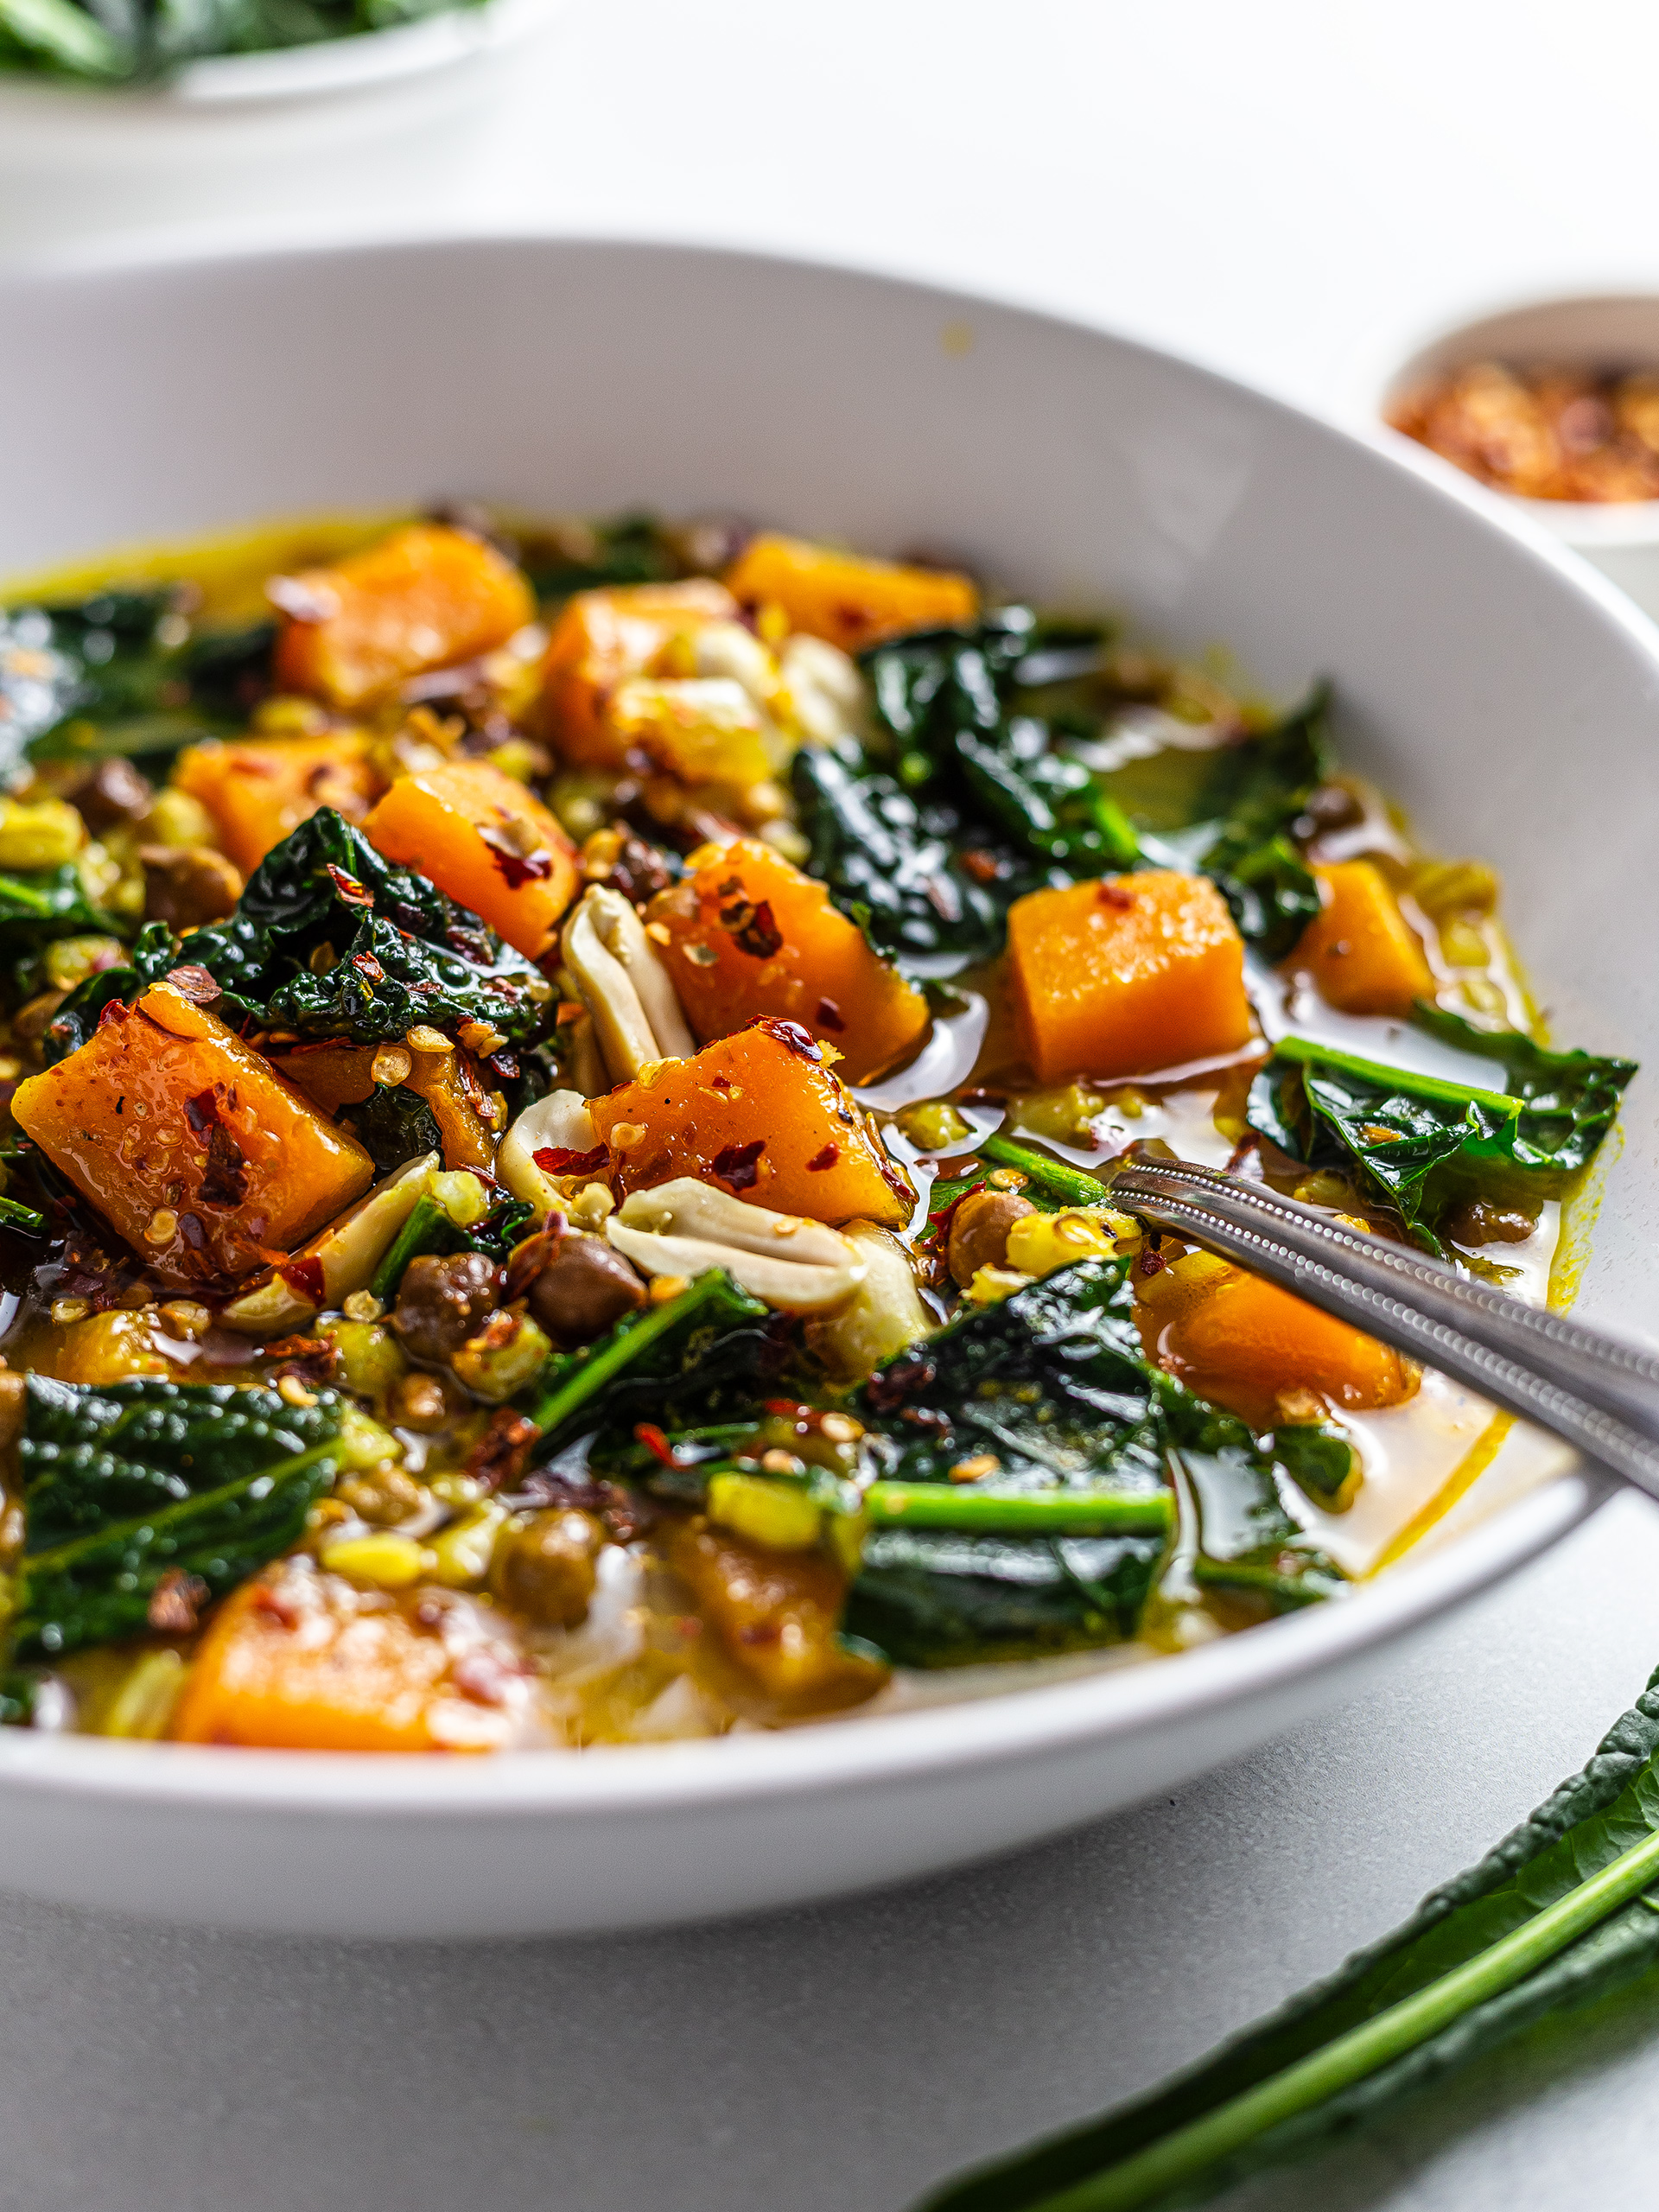 Pumpkin Kale Soup with Brown Chickpeas Preview